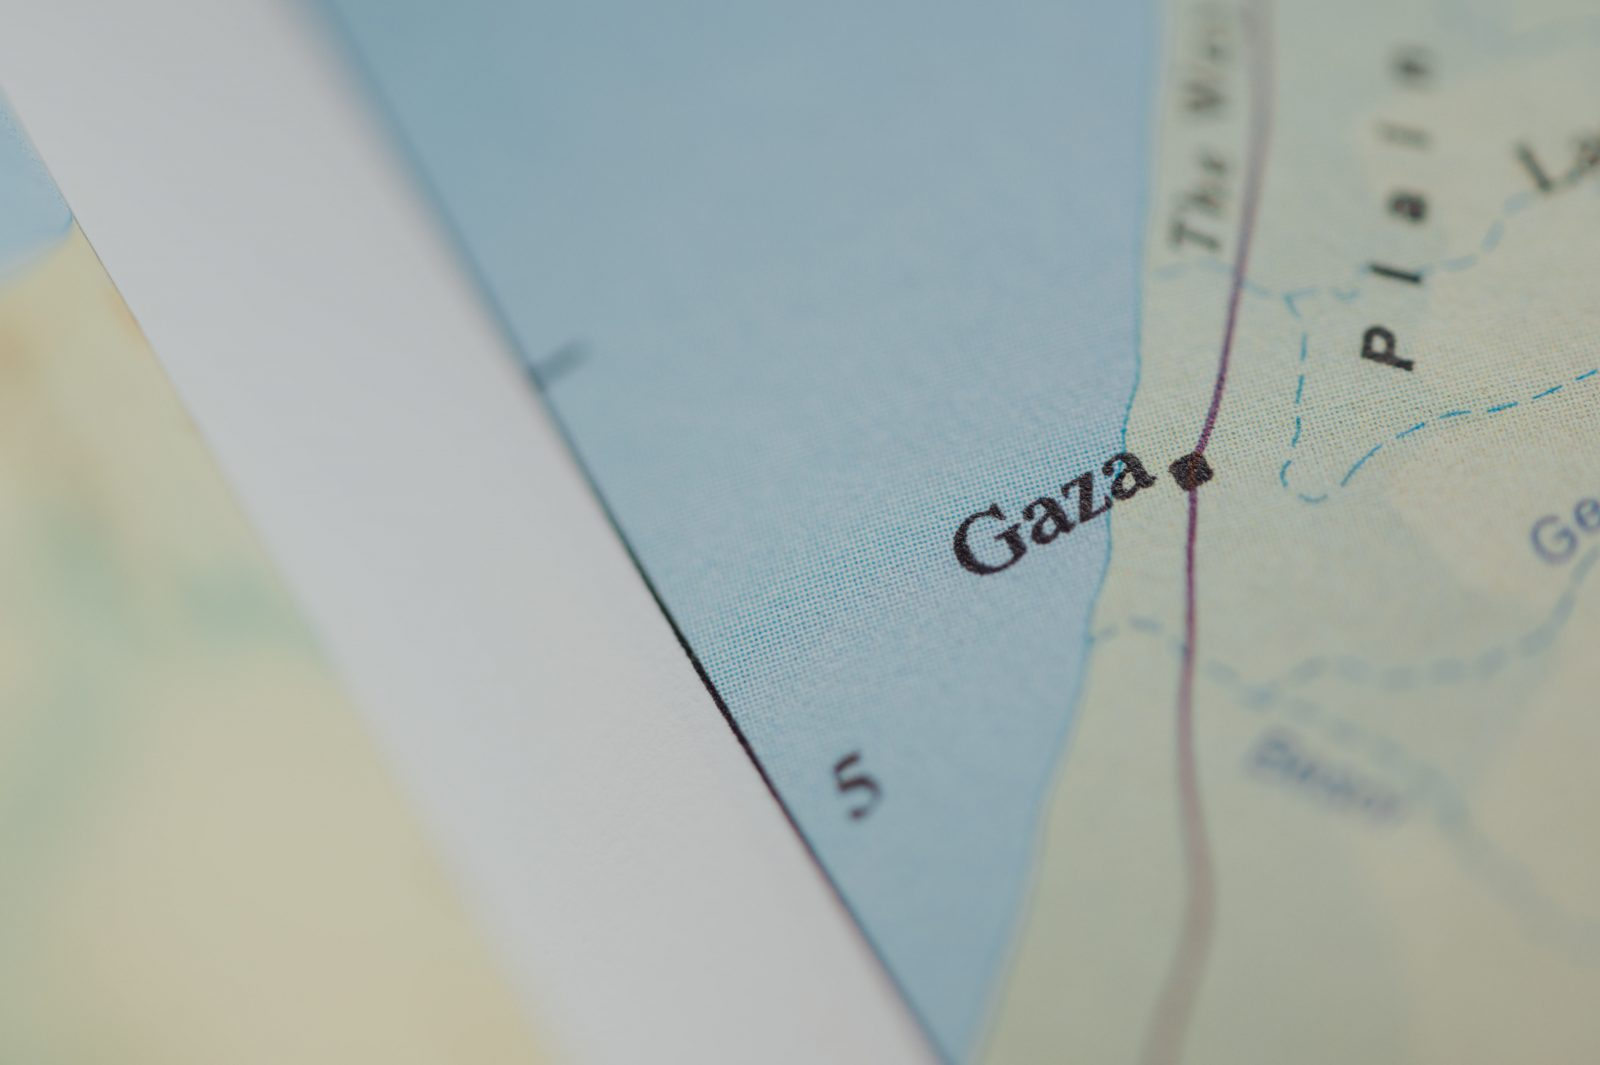 Cease Fire Agreement Between Hamas and Israel: What are Its Implications?